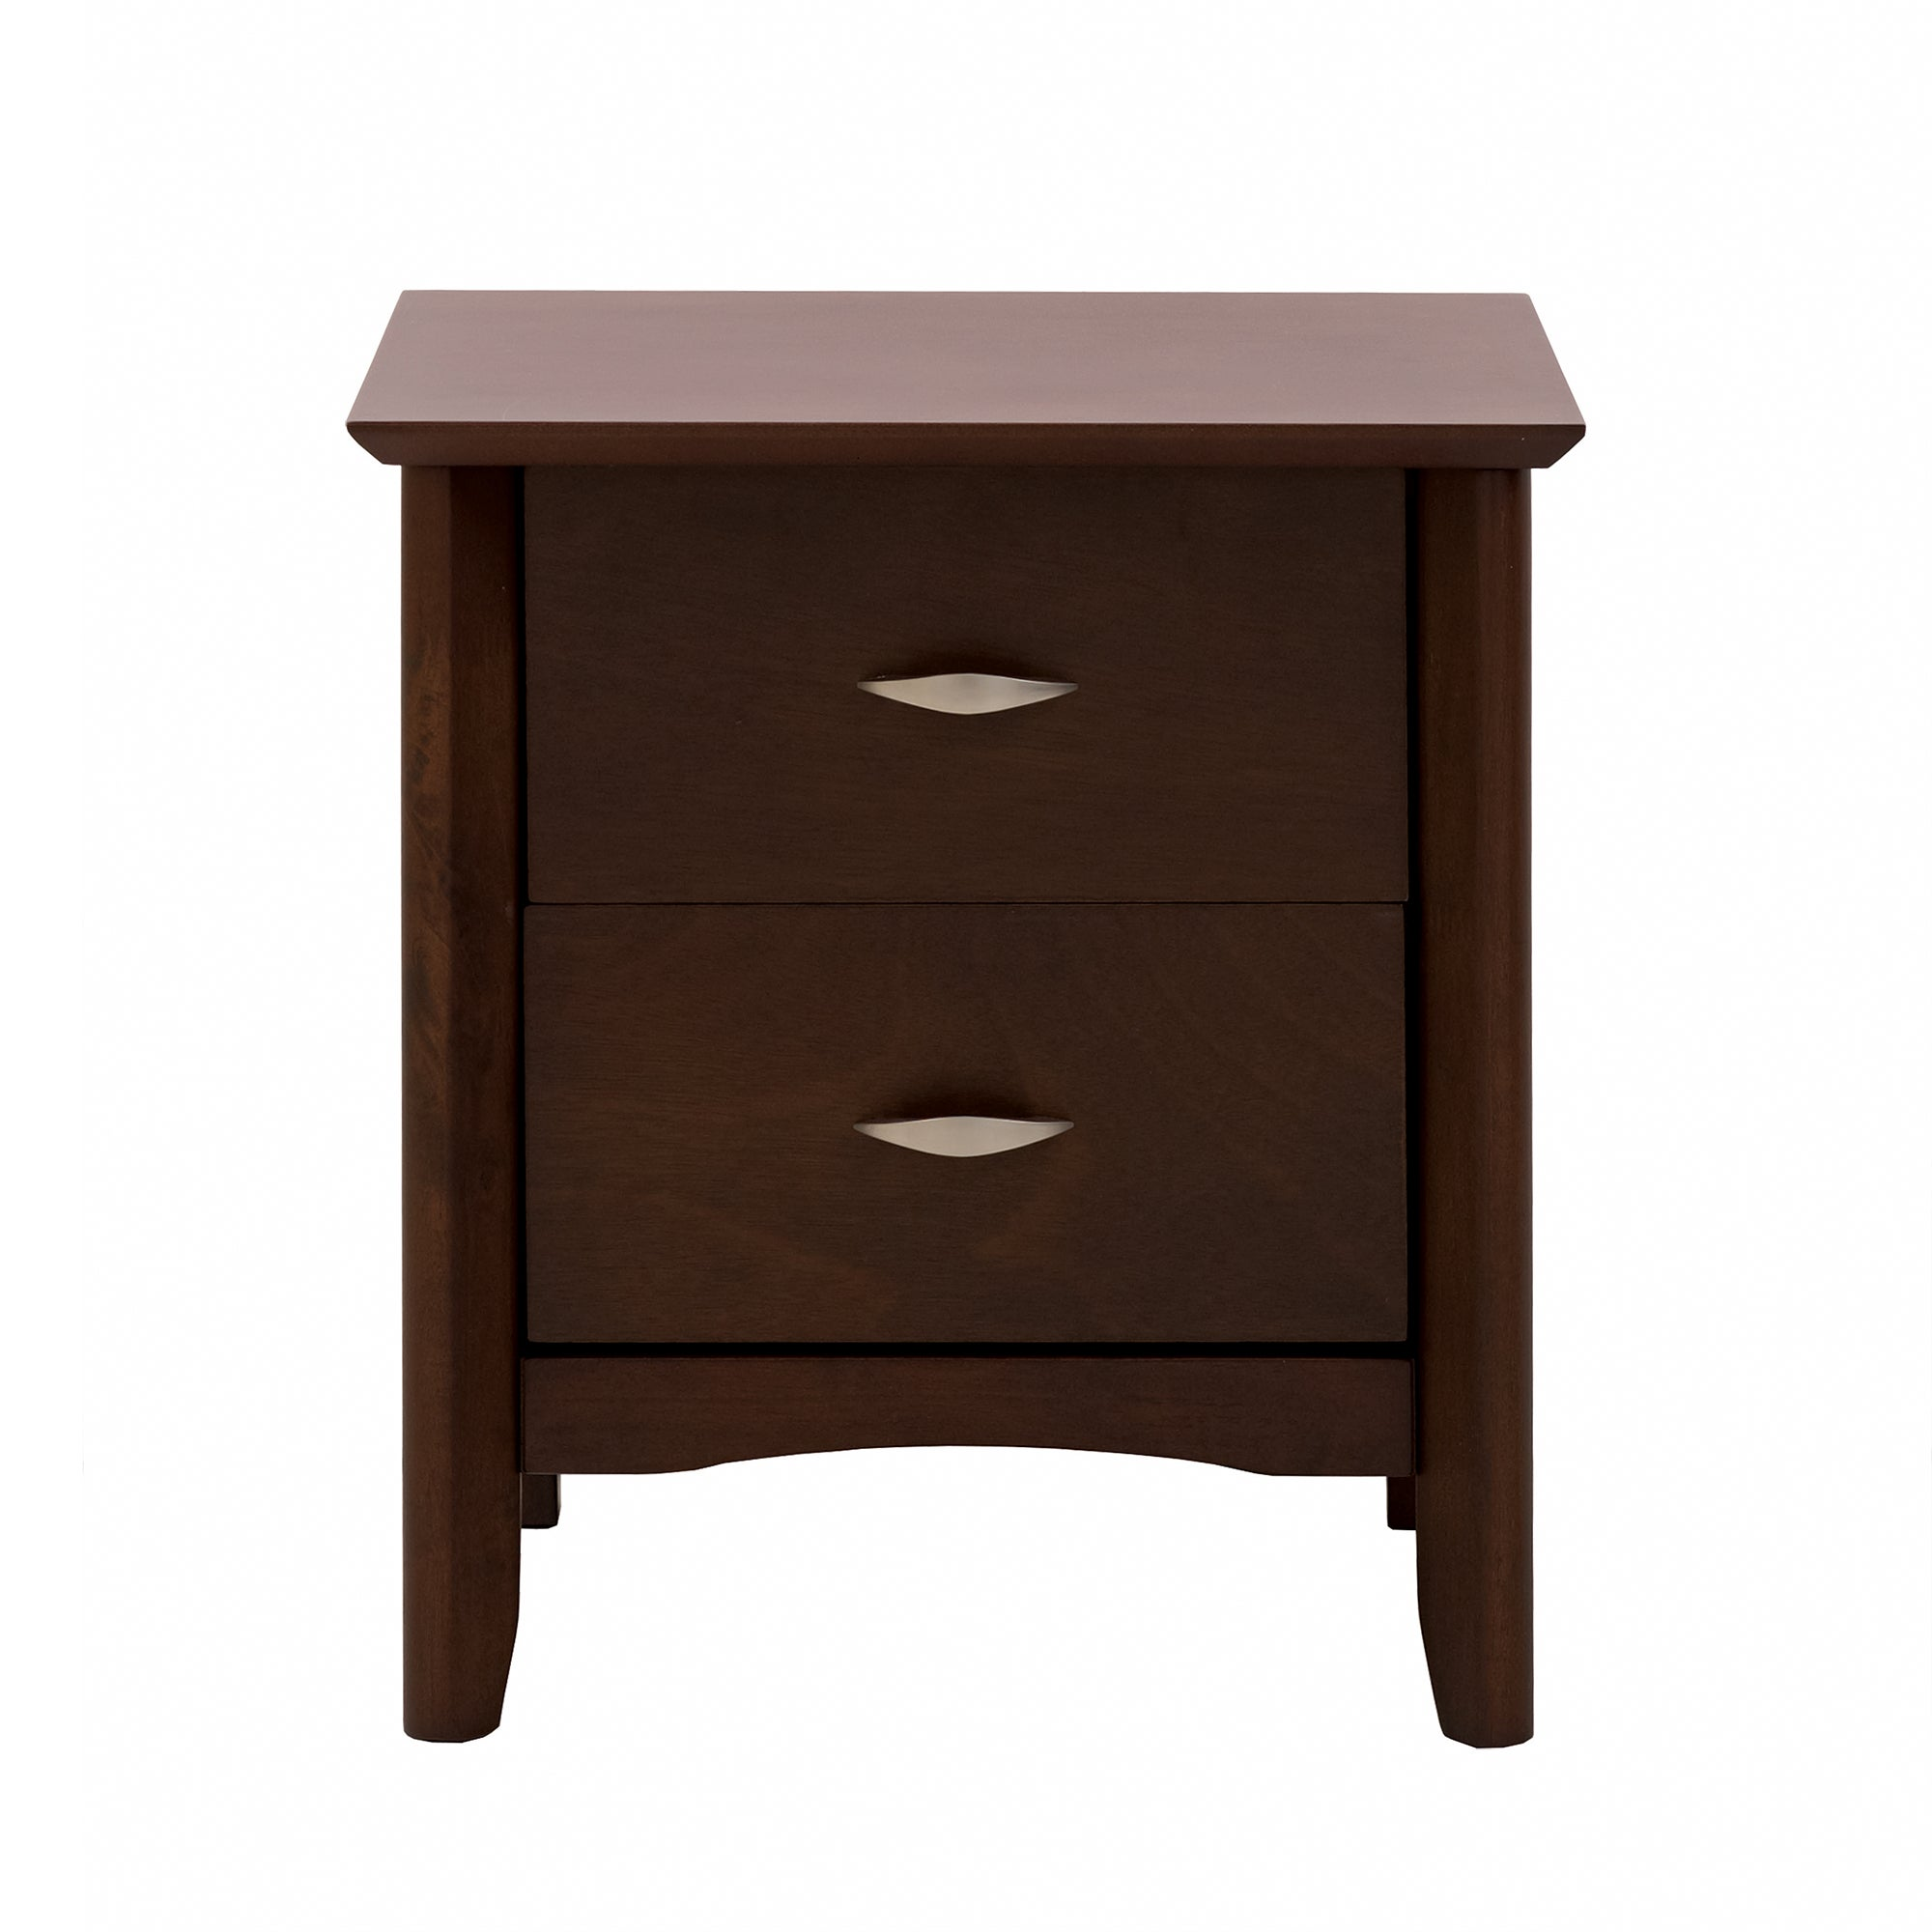 Monet Dark Wood 2 Drawer Bedside Unit